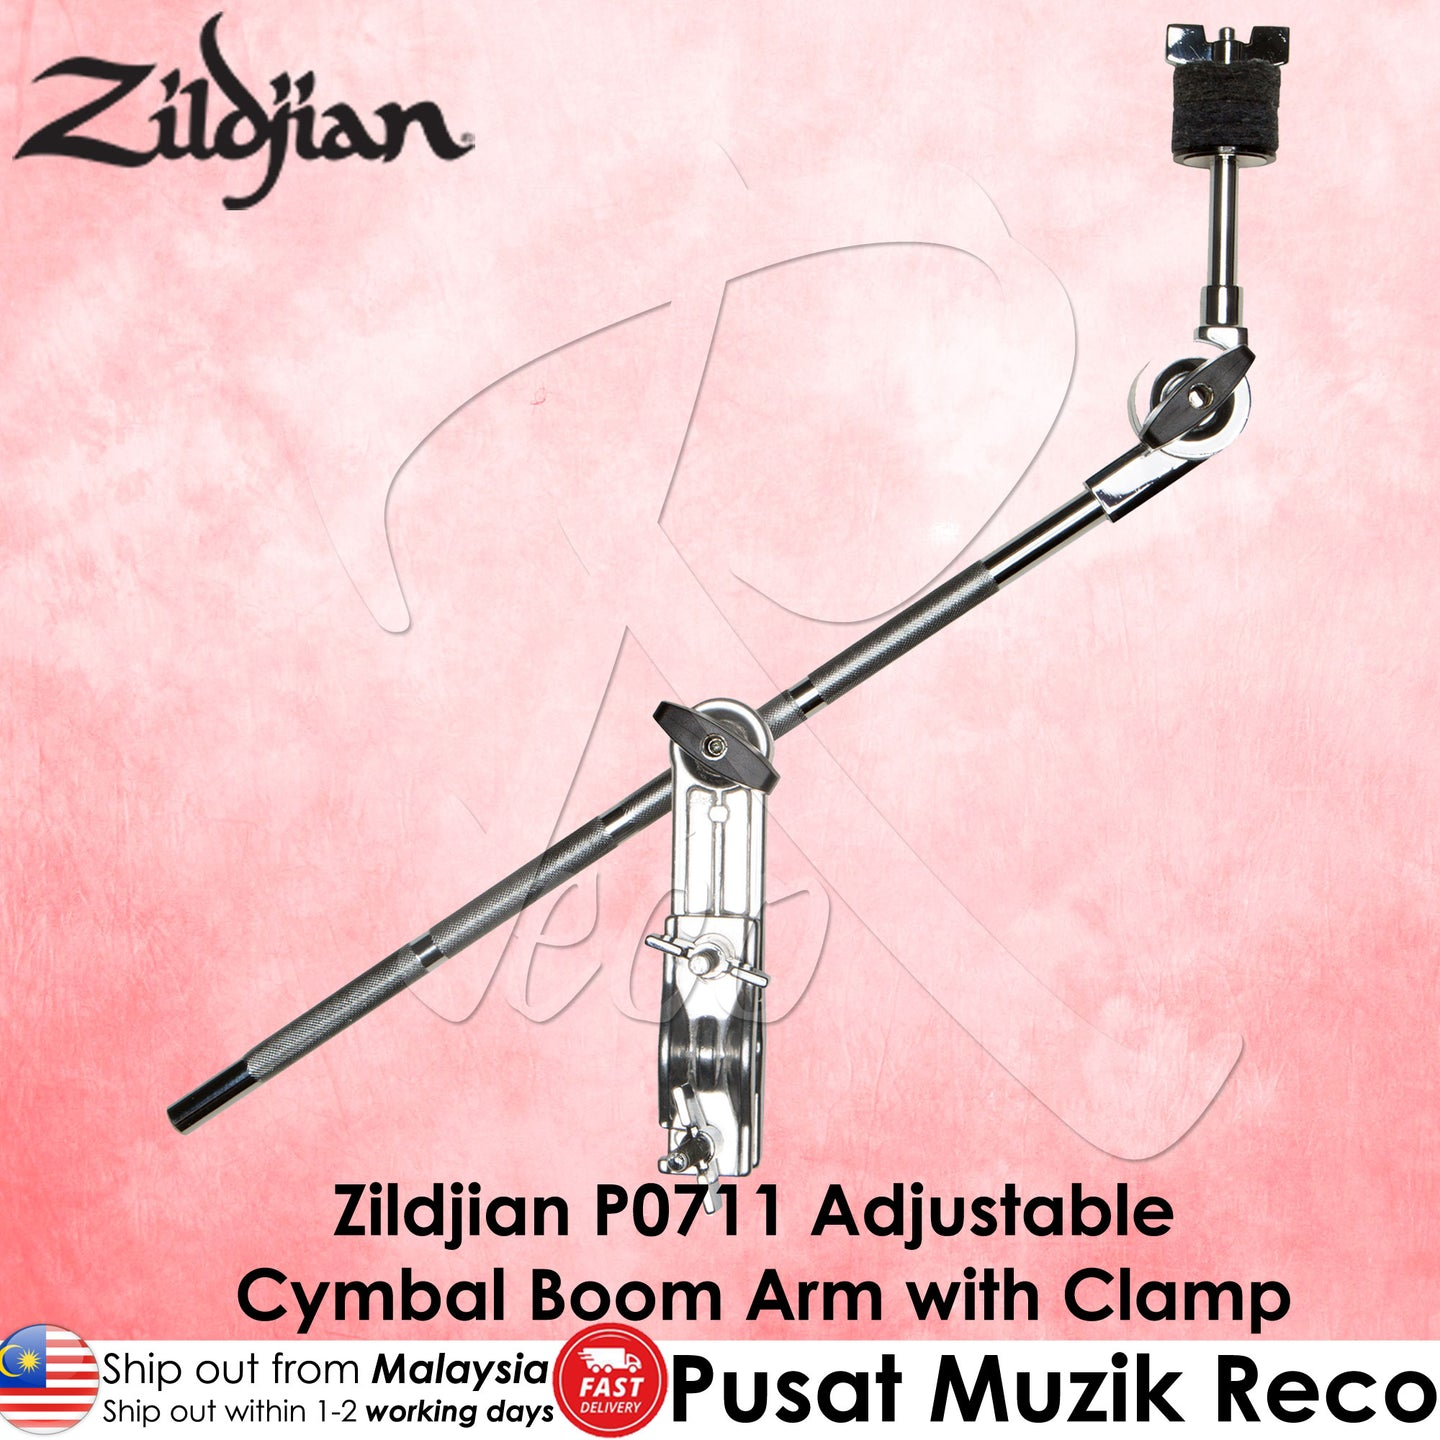 Zildjian P0711 Adjustable Cymbal Boom Arm with Clamp - Reco Music Malaysia